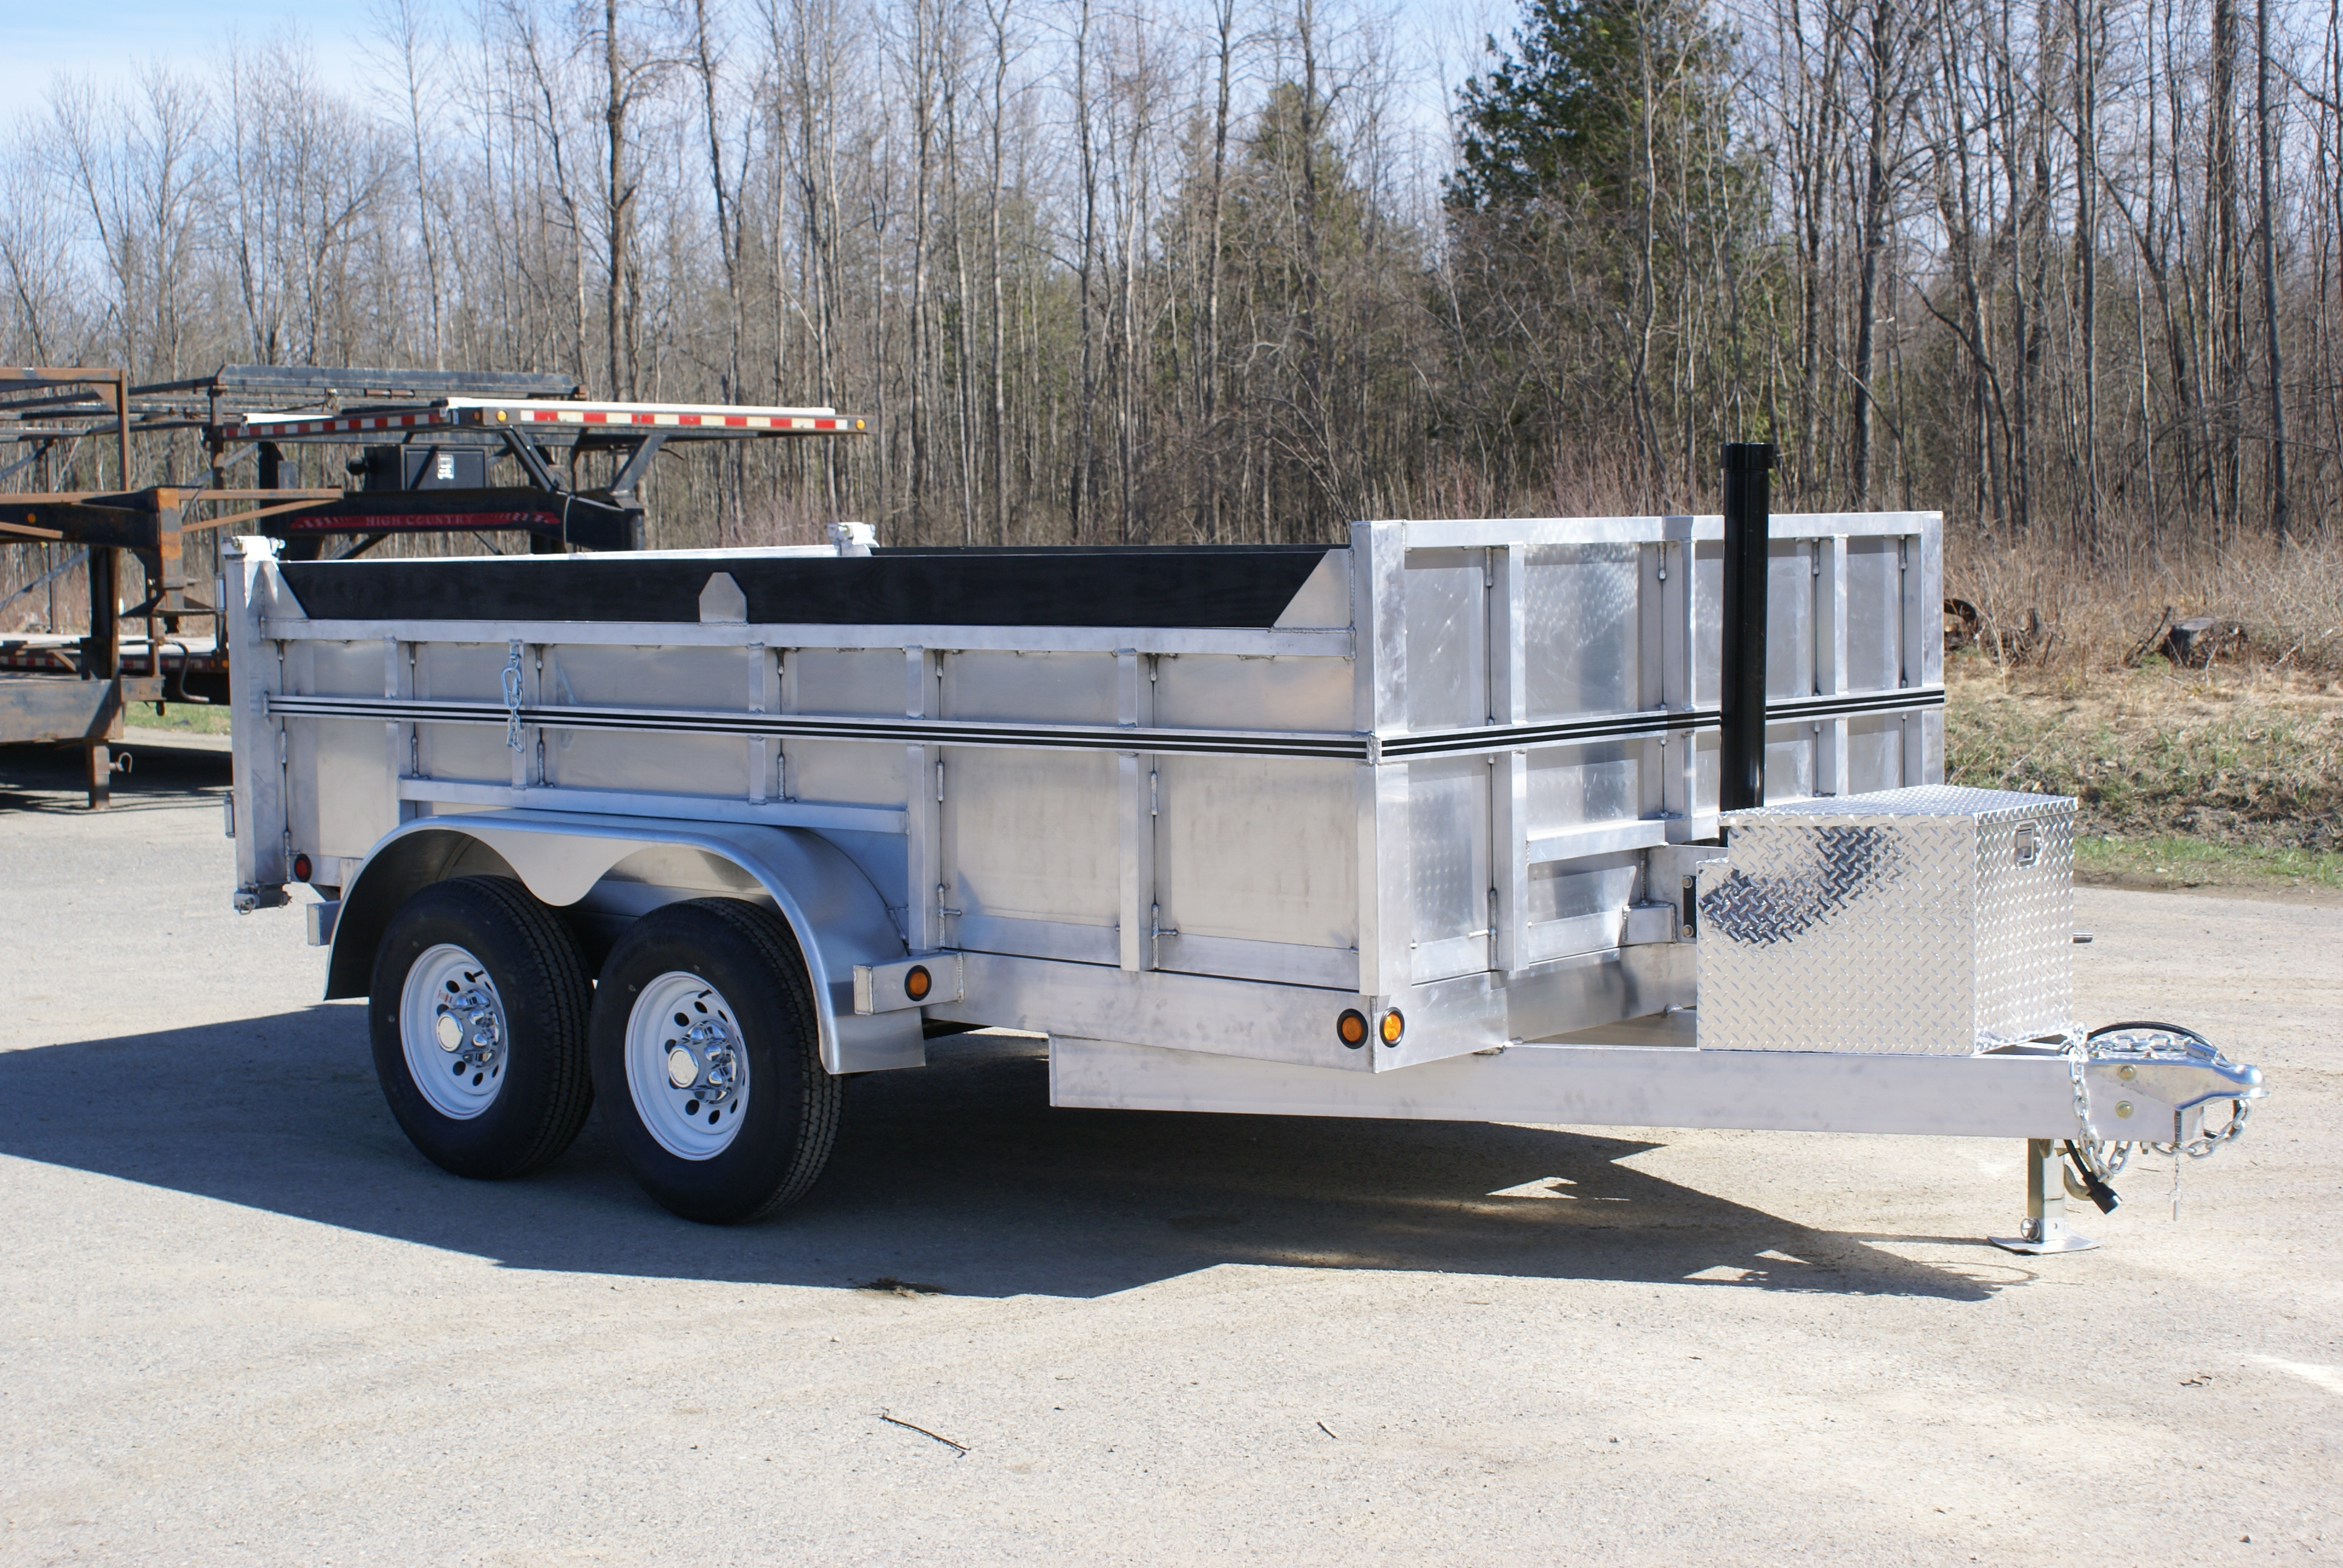 2008 sterling acterra 6996465 moreover Homeowner Utility additionally 337306931 besides Rollover Sofa Bed Wall Mounted also 2016 Peterbilt 388 Day Cab Truck 8433625. on aluminum dump trailers